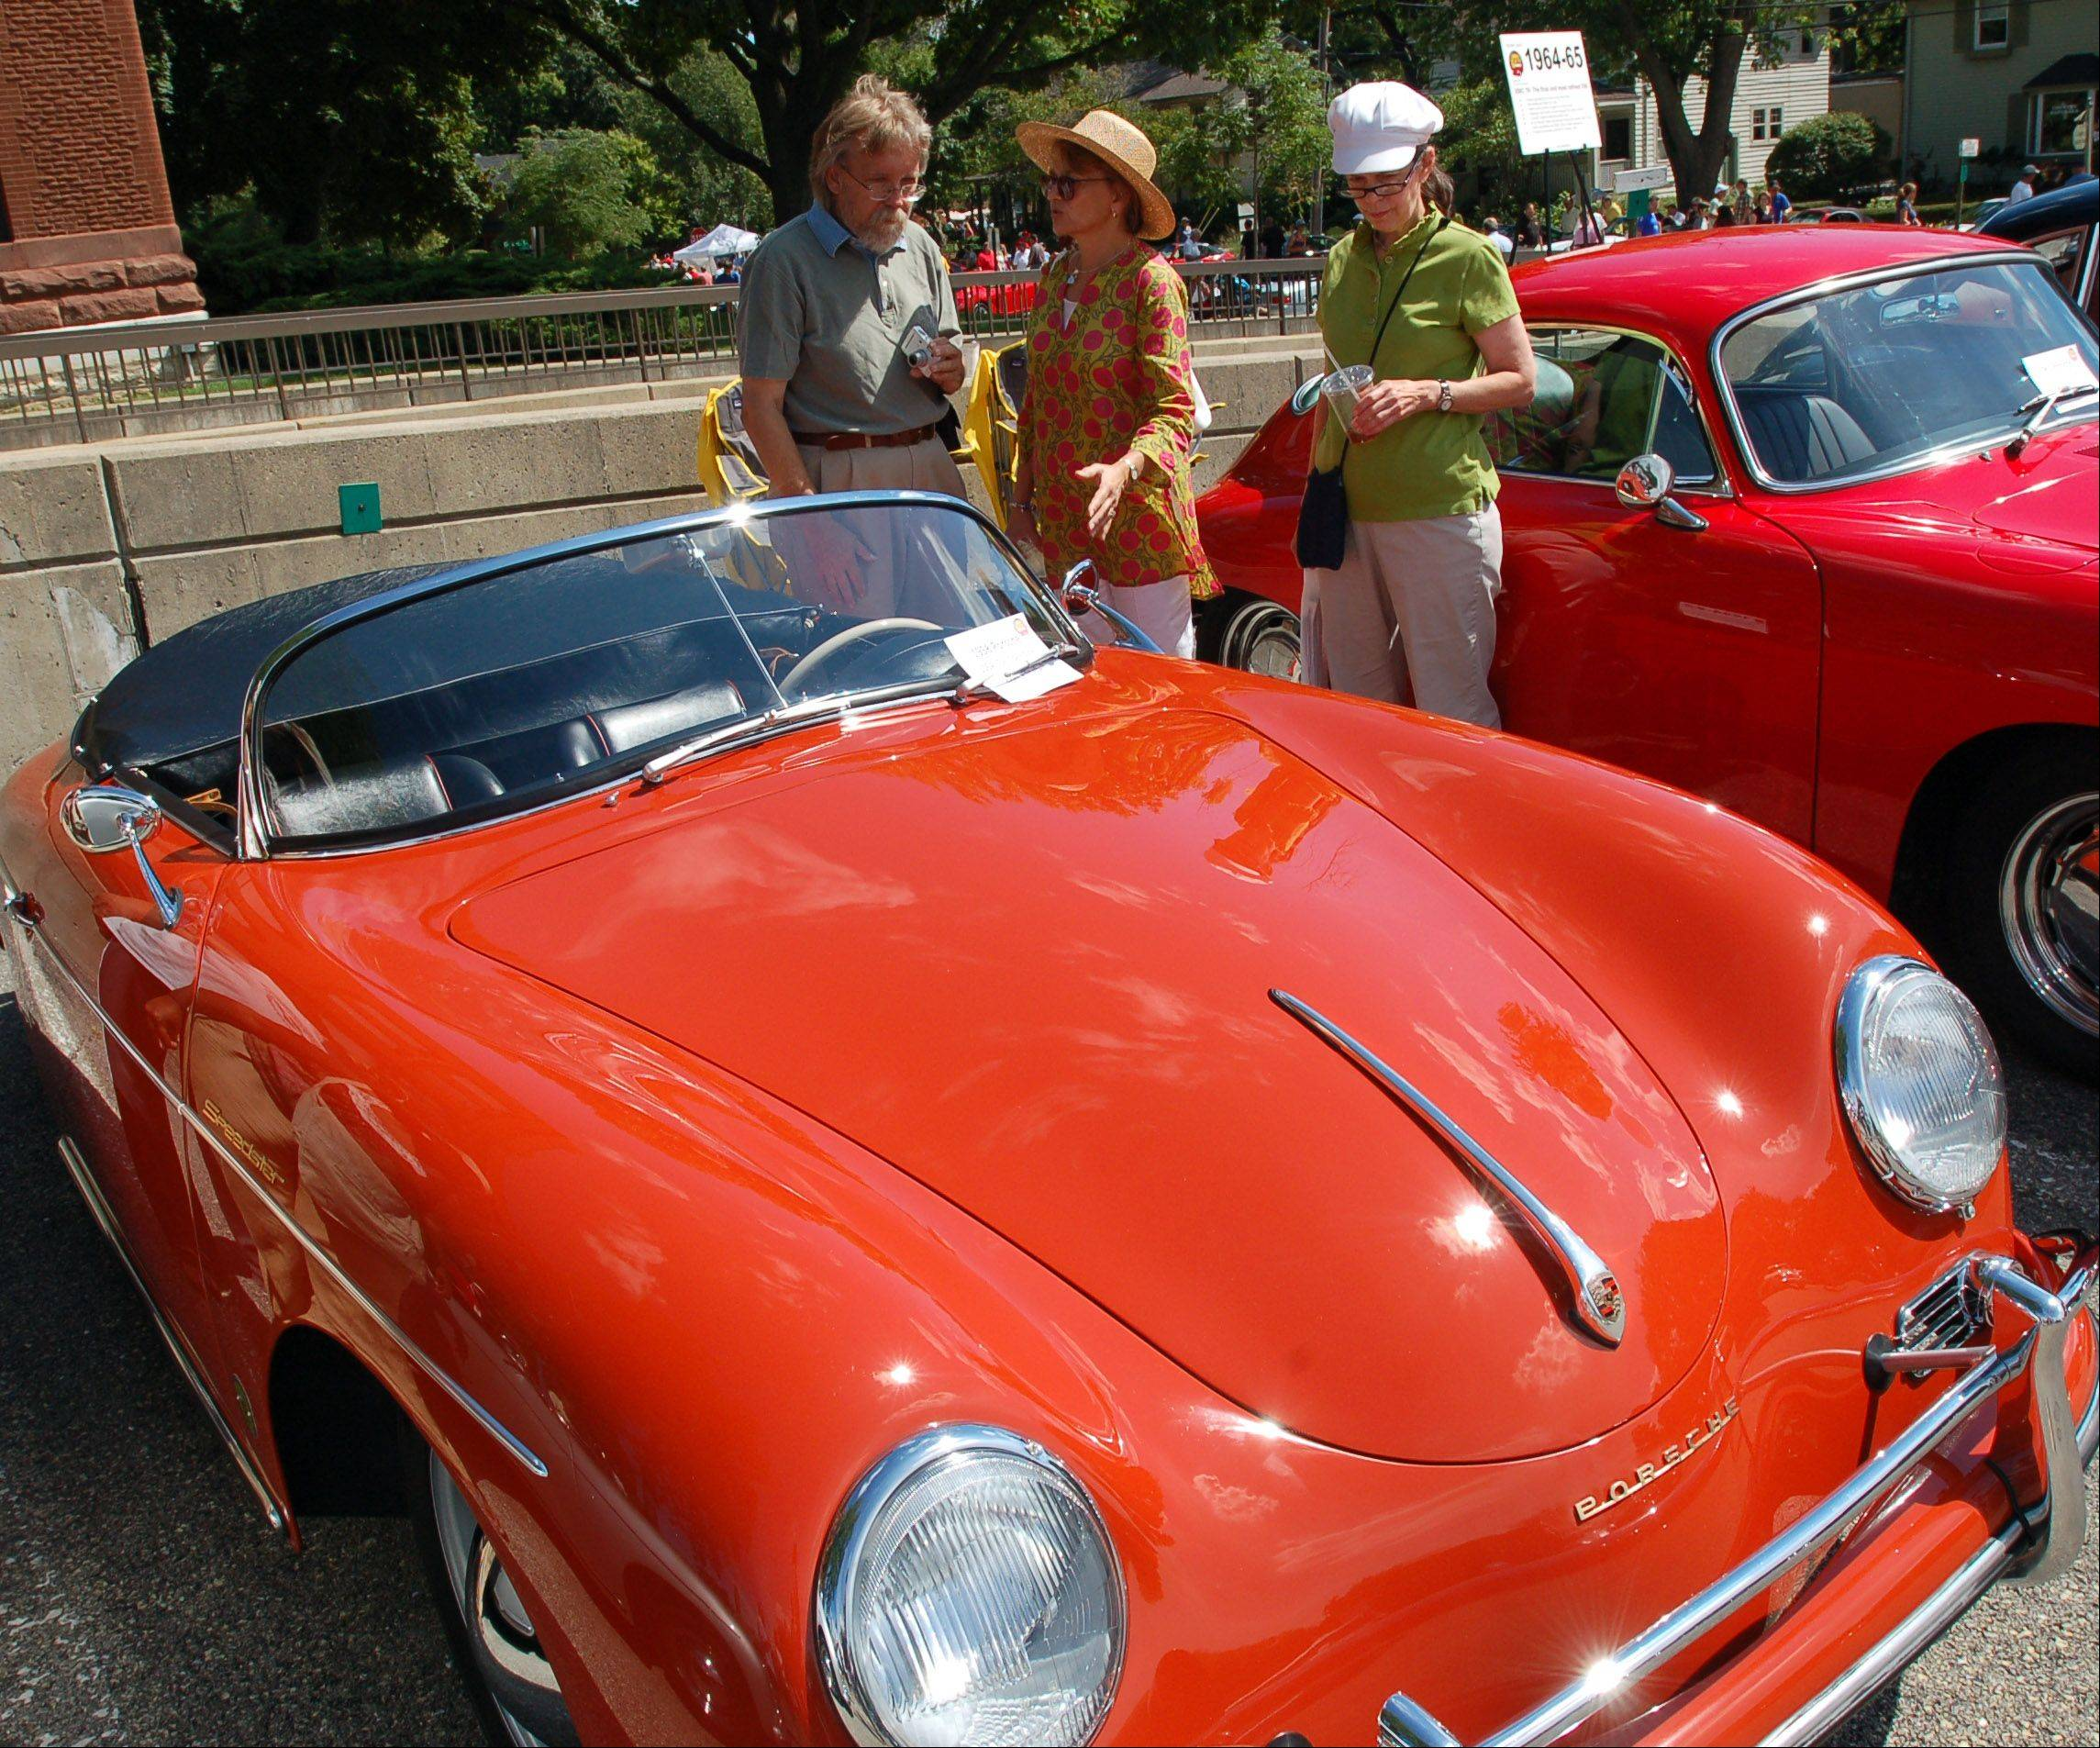 Daily Herald File Photo Tom Drebenstedt, left, of Chicago, Chris Aupperle of Rockford and Kathy Chilis of Chicago enjoyed looking at a 1958 Porsche 356A (T2) Speedster during a previous year's Geneva Concours d�Elegance classic car show.